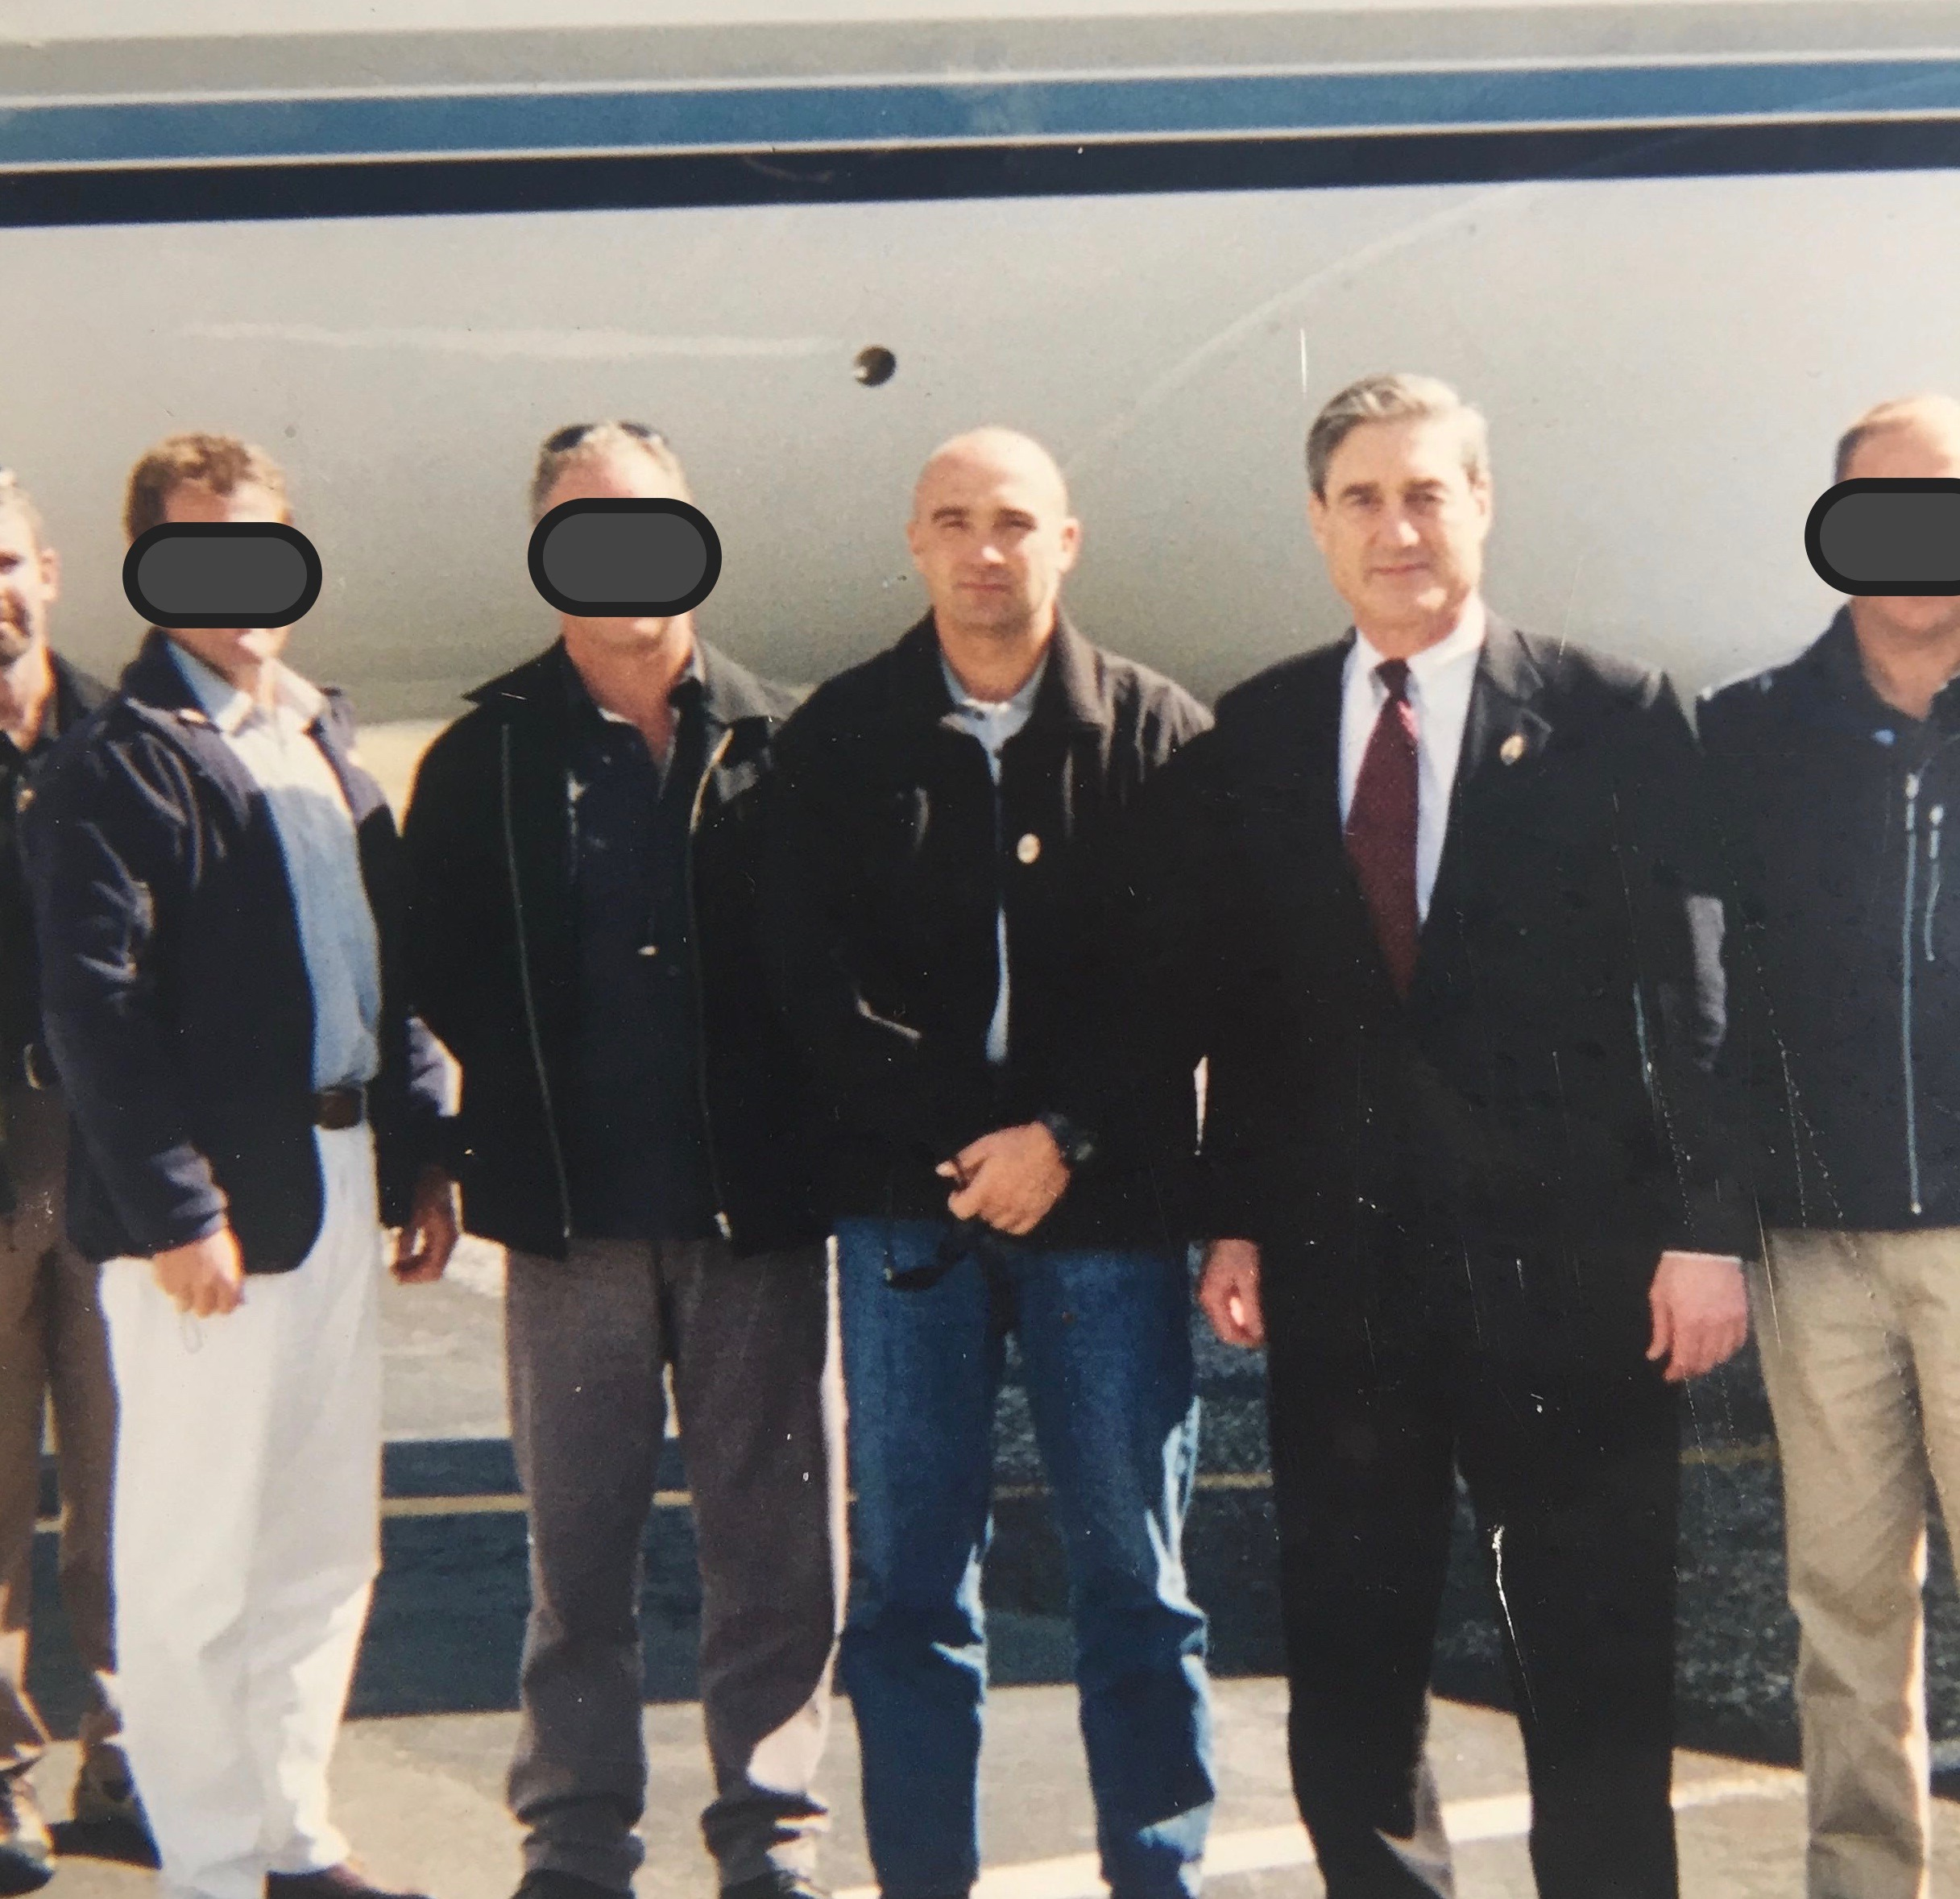 FBI Director with NZ CP Team - The STG providing CP (close protection) to the then FBI Director Robert Muller III whilst he was on a visit to NZ a few years back. Photo taken beside his private jet as he and his entourage head back to the States